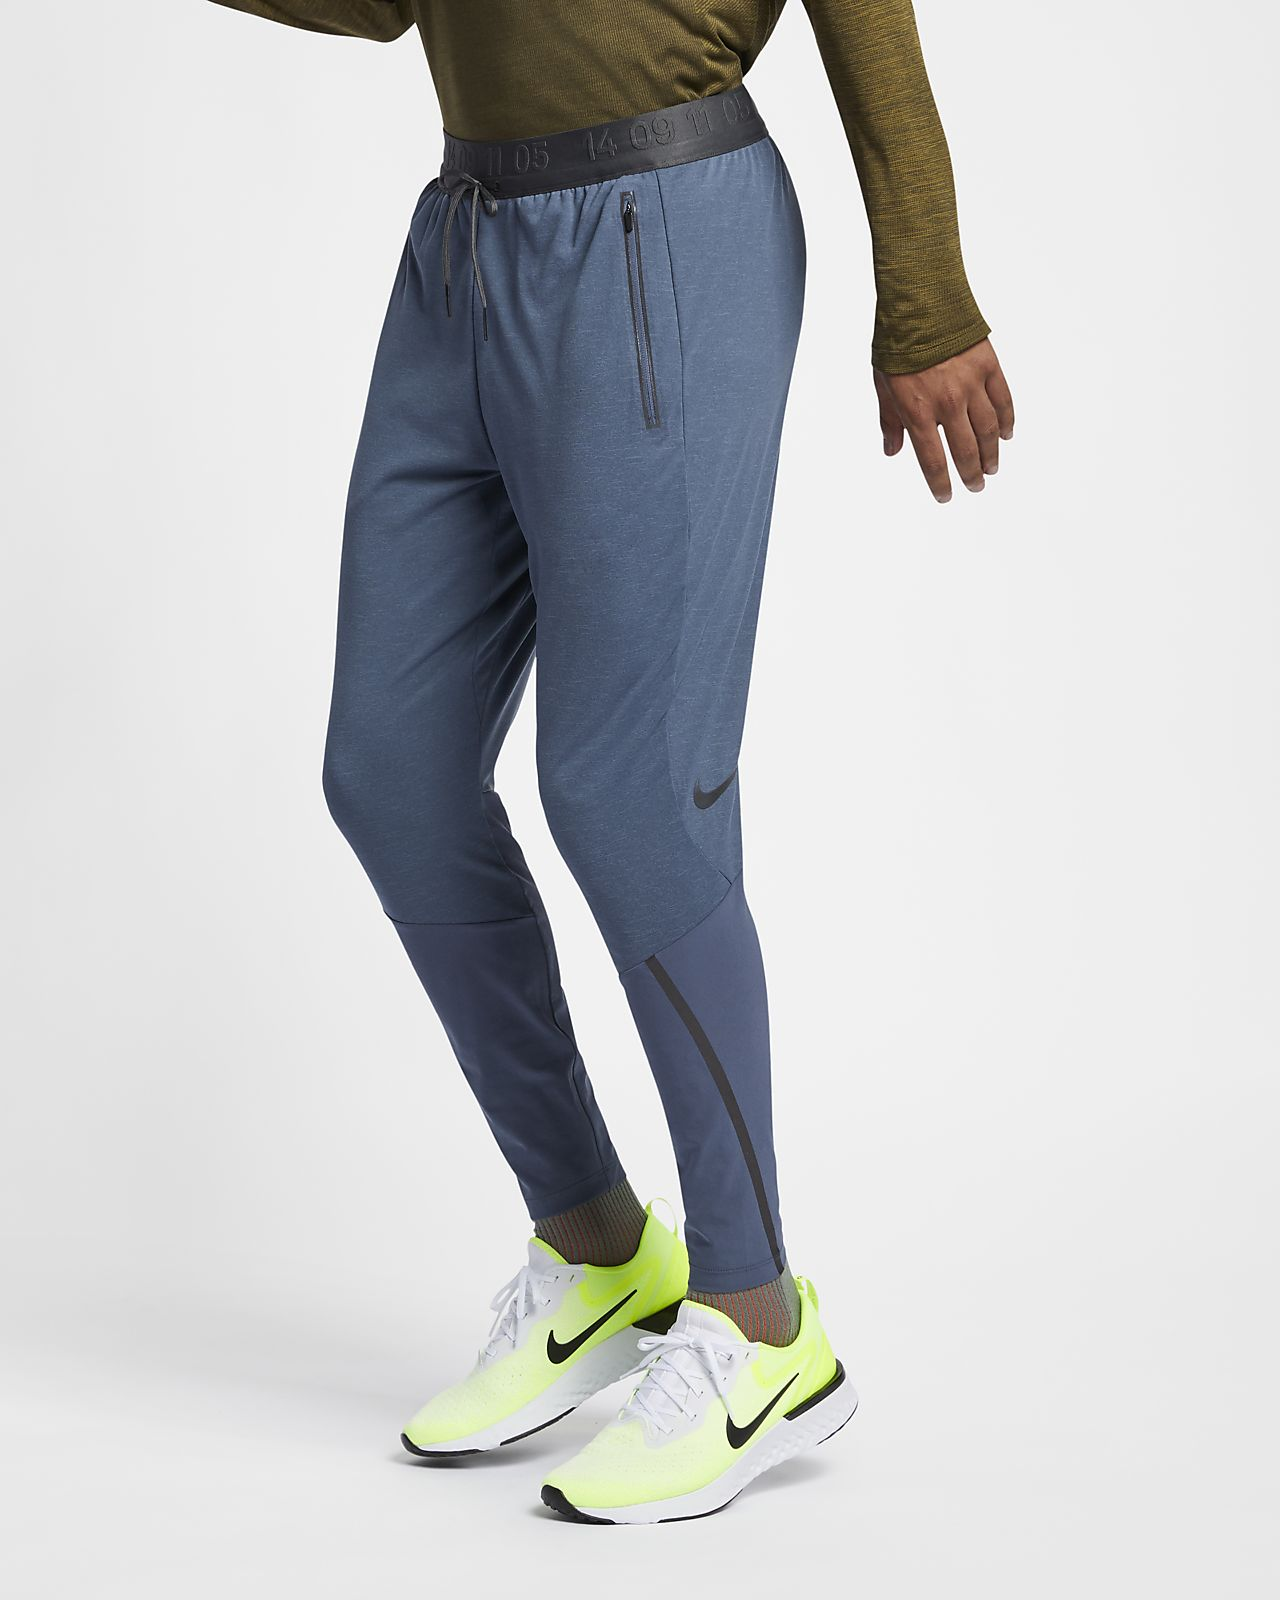 Sphere Nike Men's Running Tech Therma Pack Trousers NkXn0Z8wOP